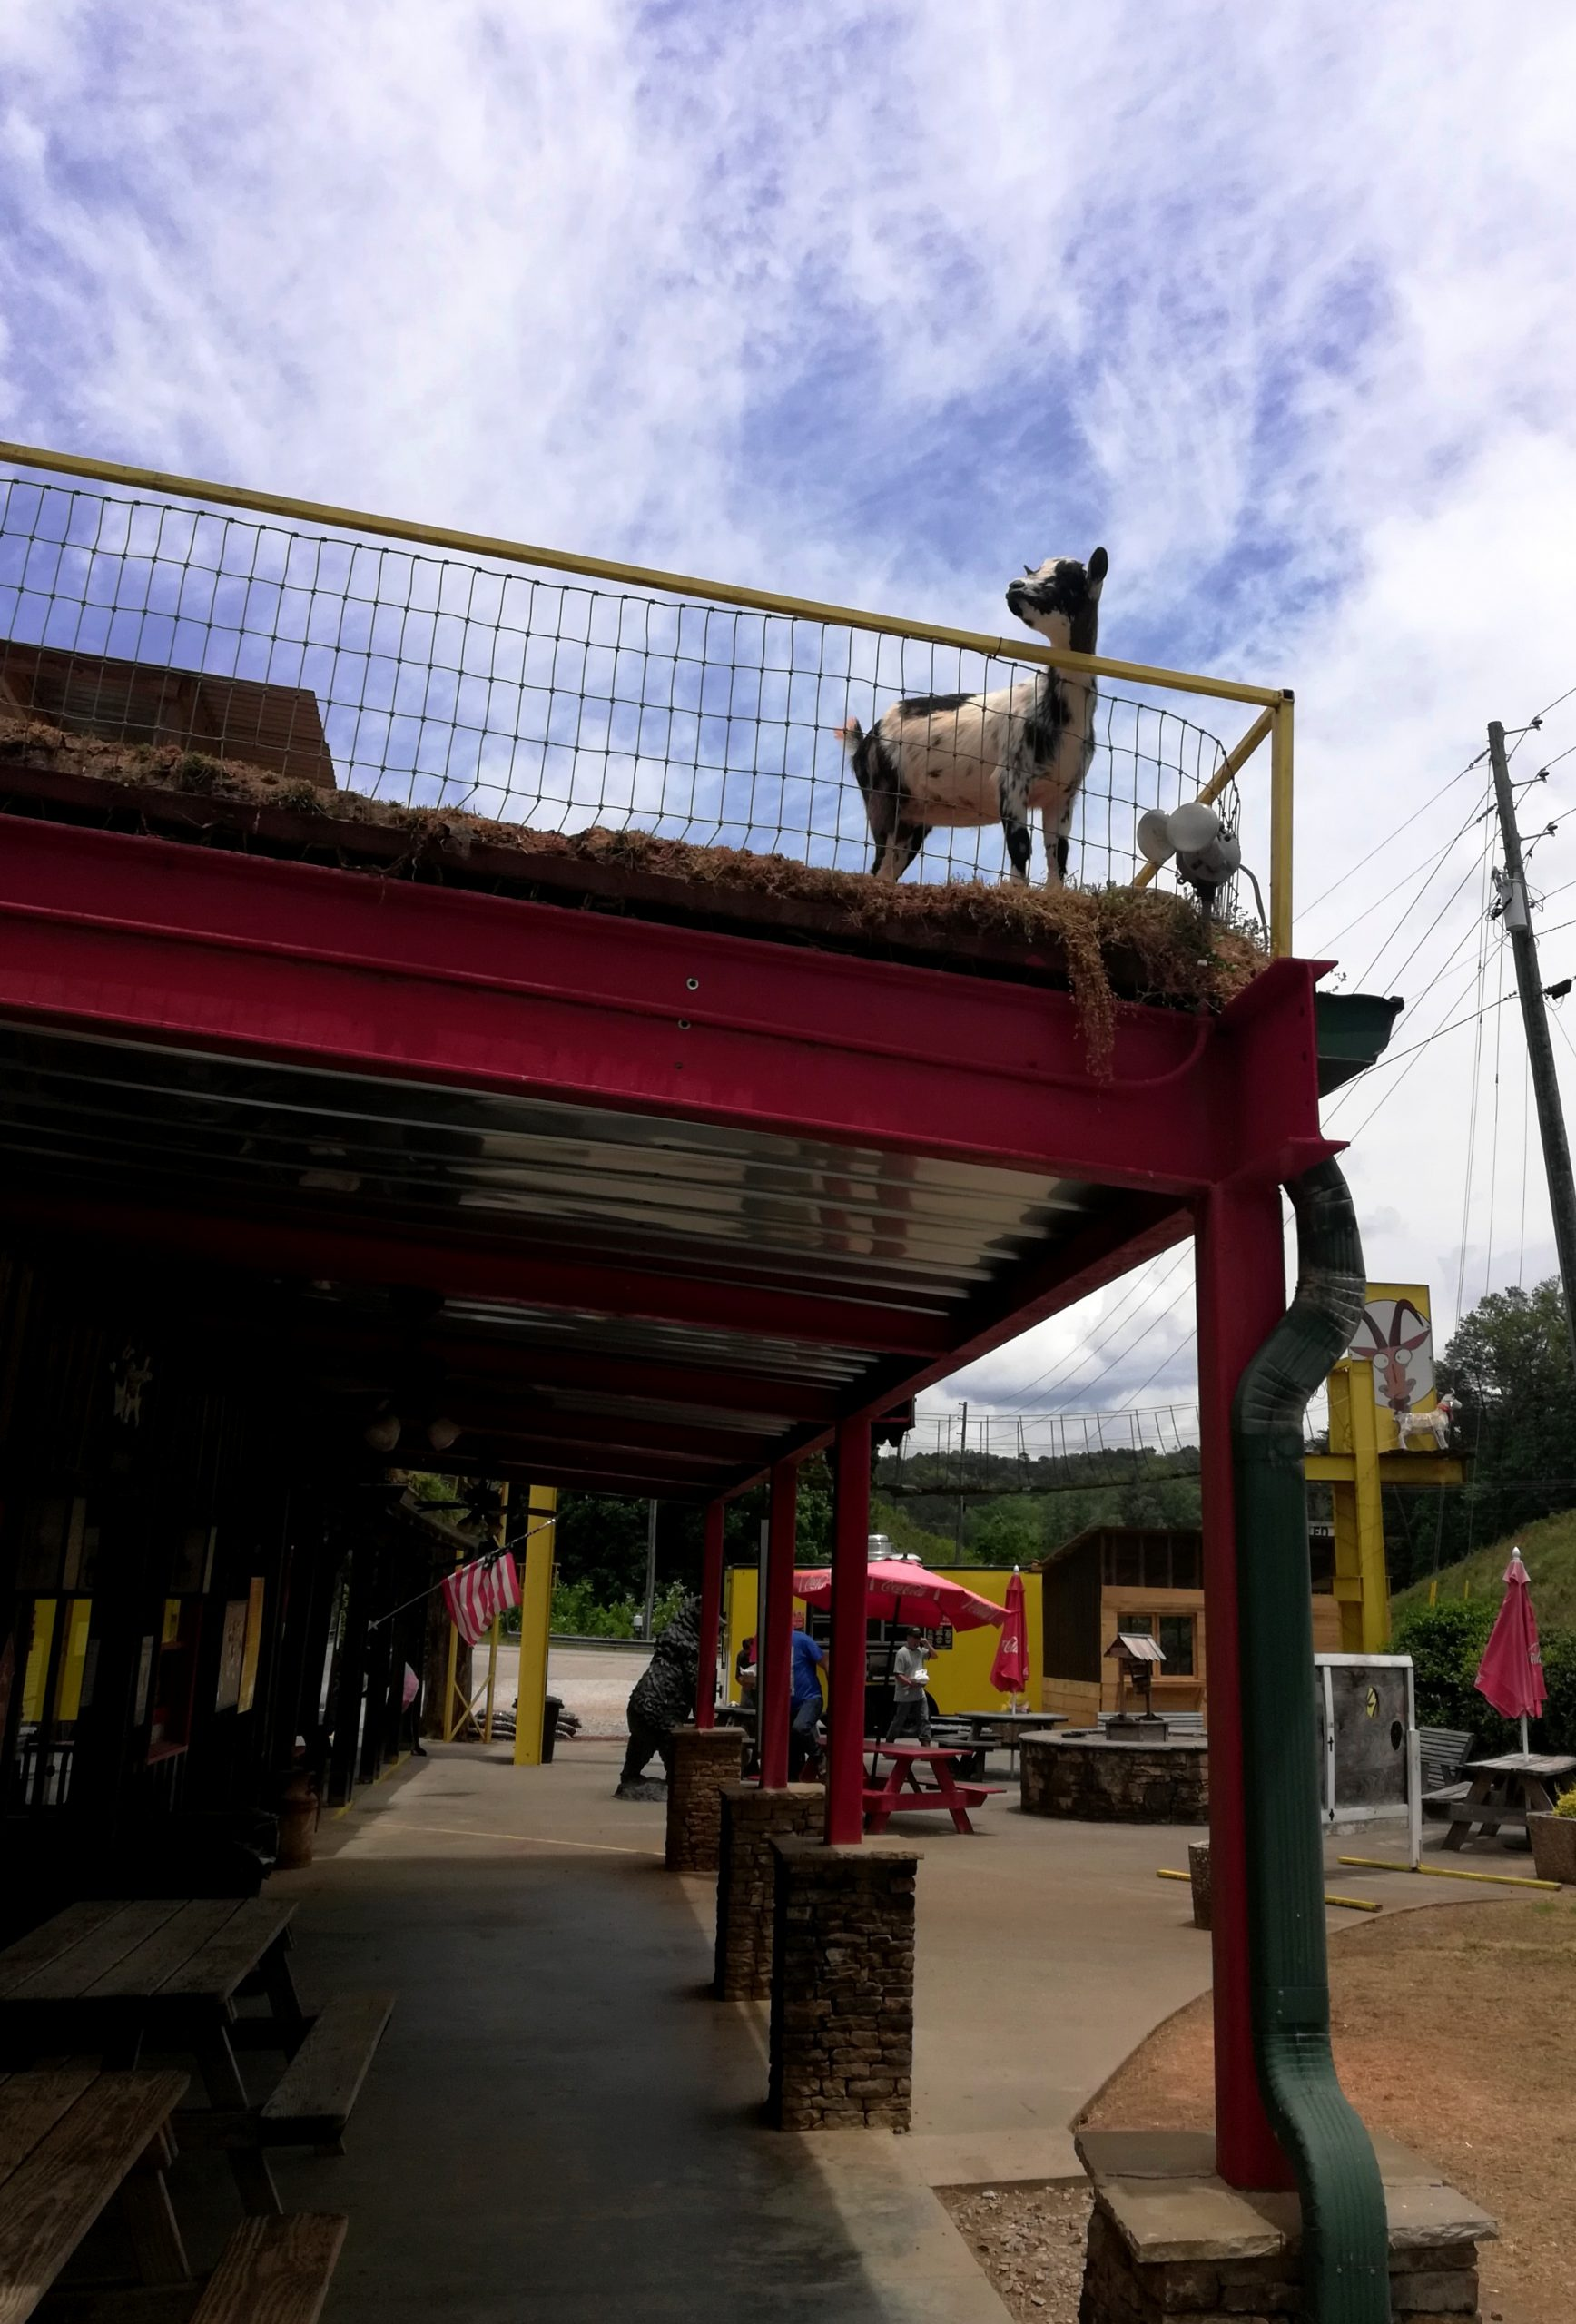 Goats on the Roof Georgia